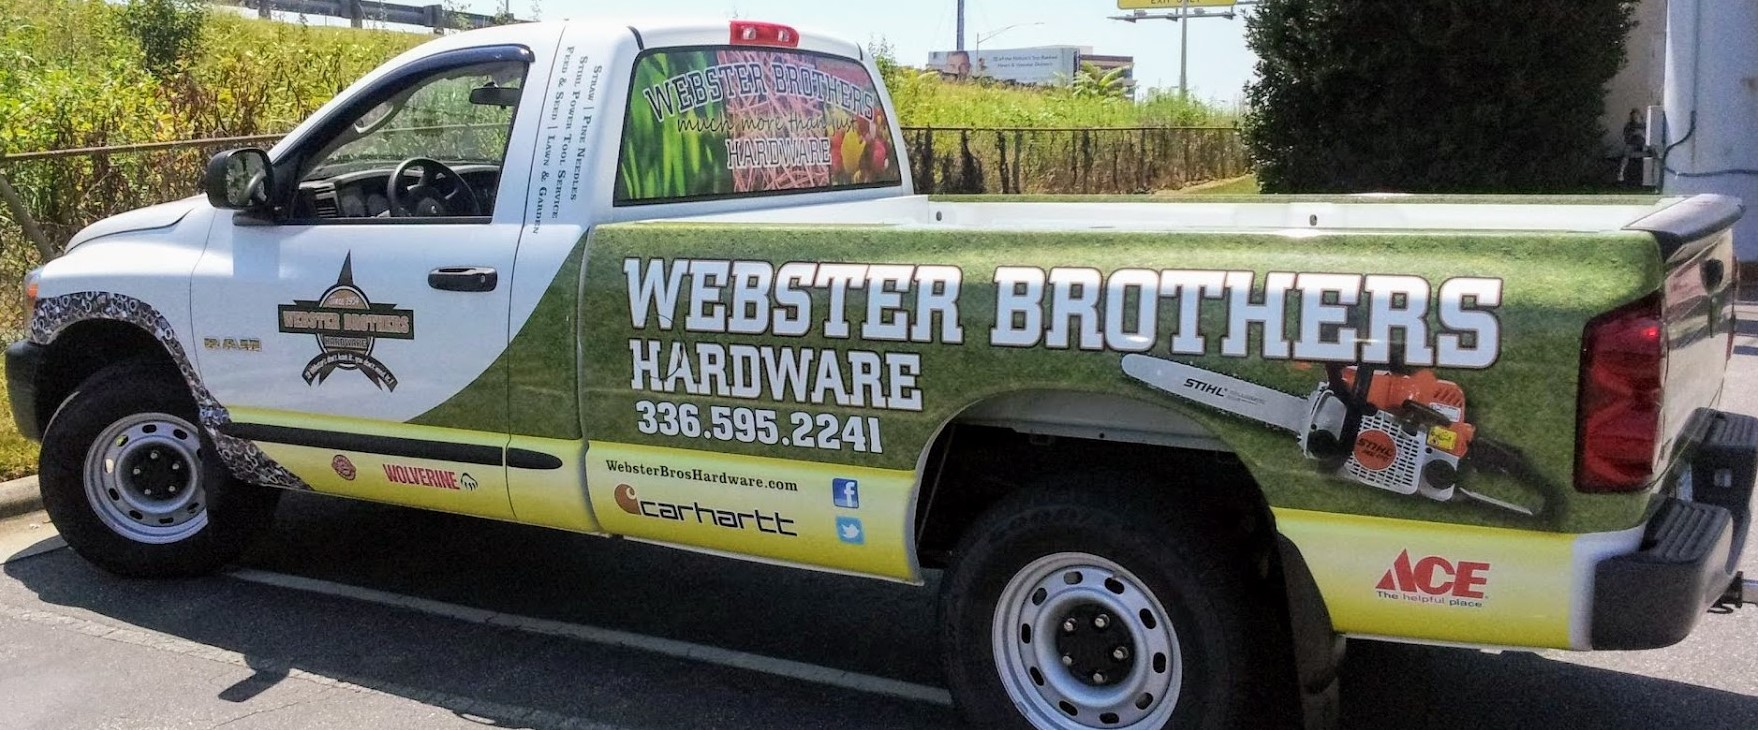 webster-brothers-hardware-vehicle-truck-wrap